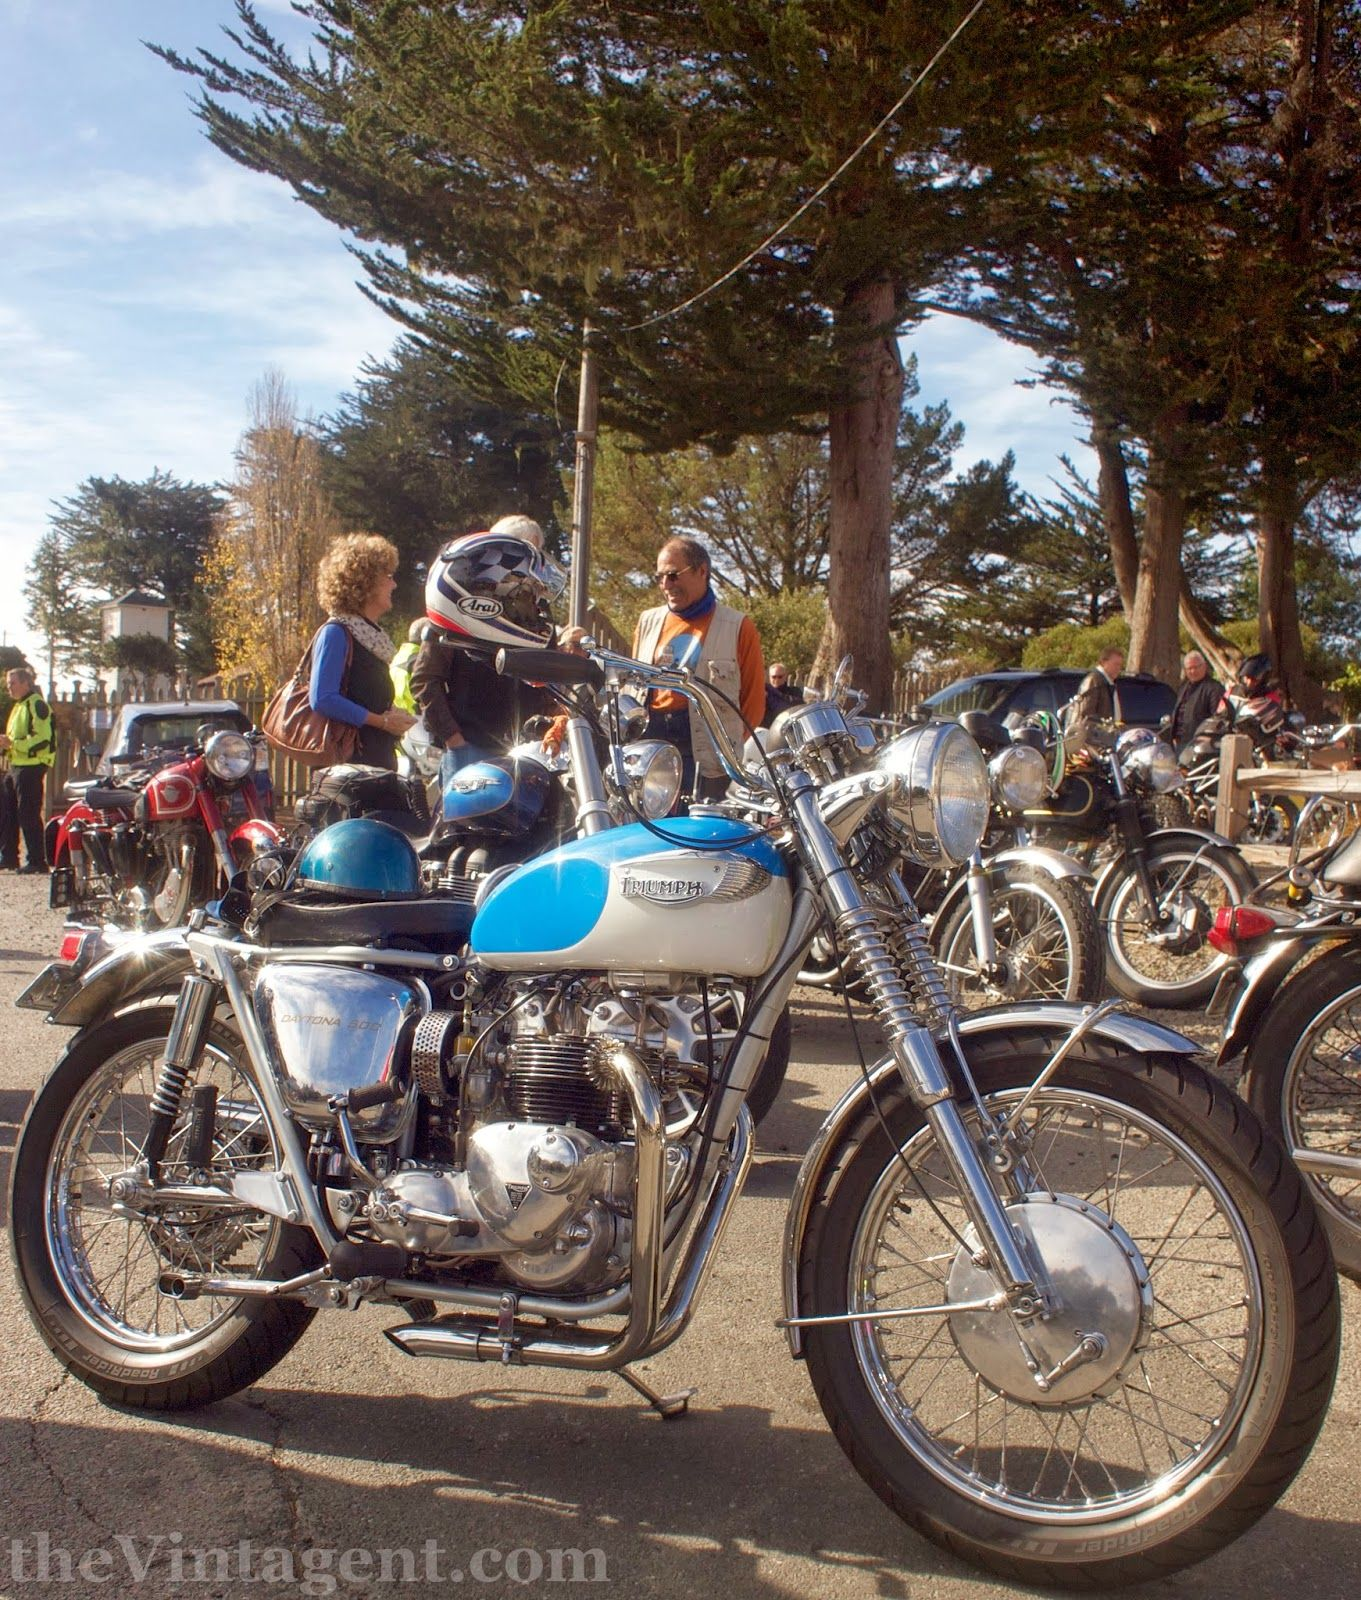 A blog about vintage motorcycles